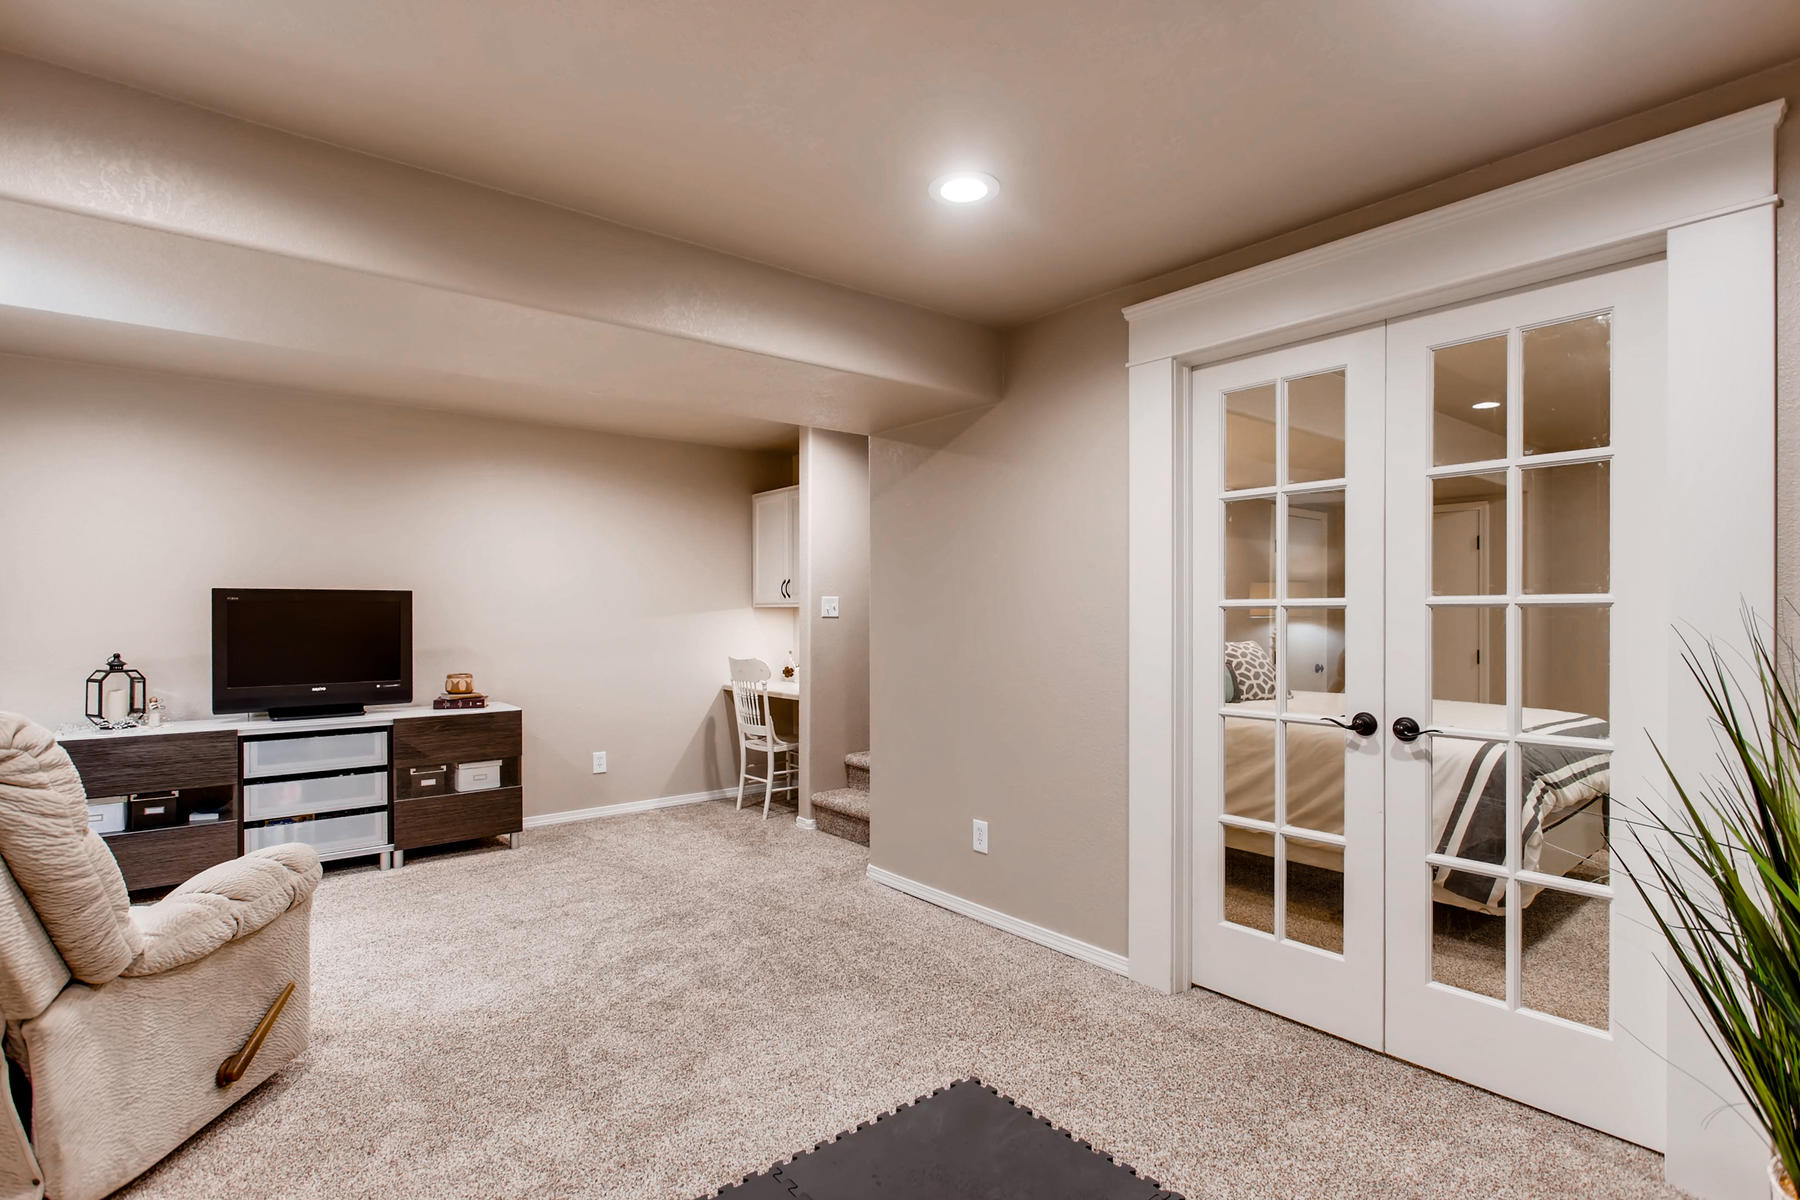 Finished Basement Provides a Great Bonus Space & Extra Bed/Bath